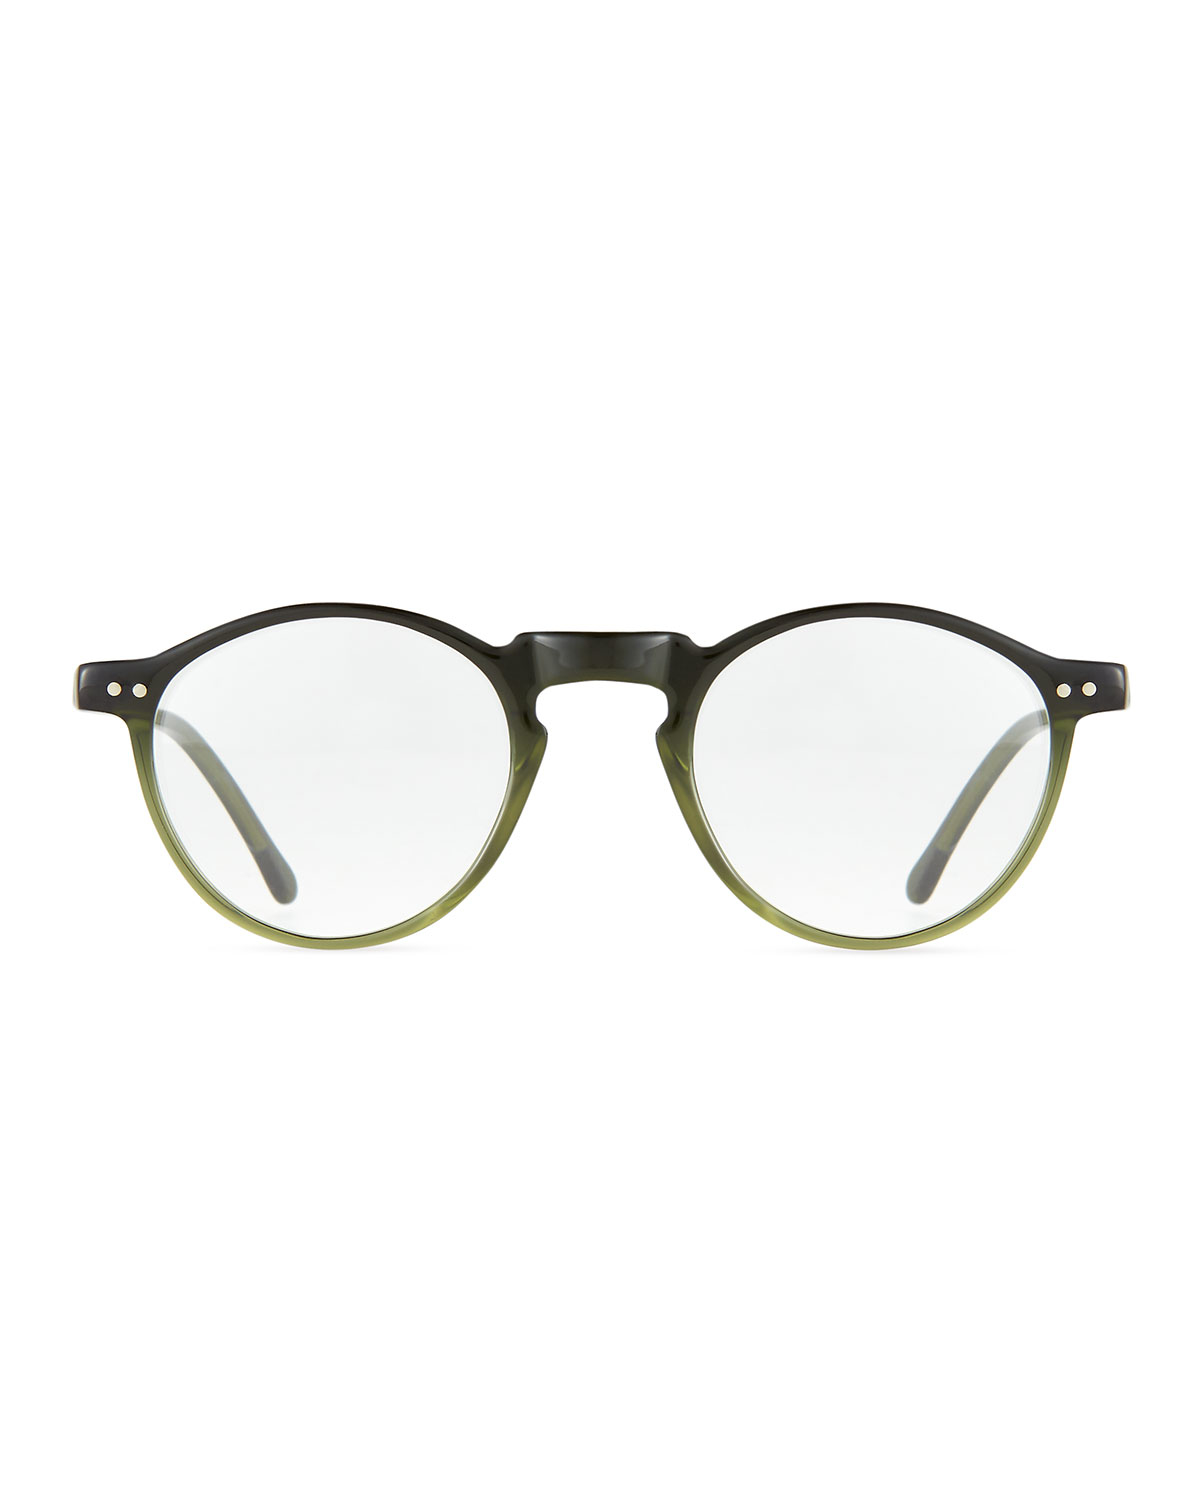 Illesteva Capri Round Optical Frames W/ Clip-on Sunglasses ...